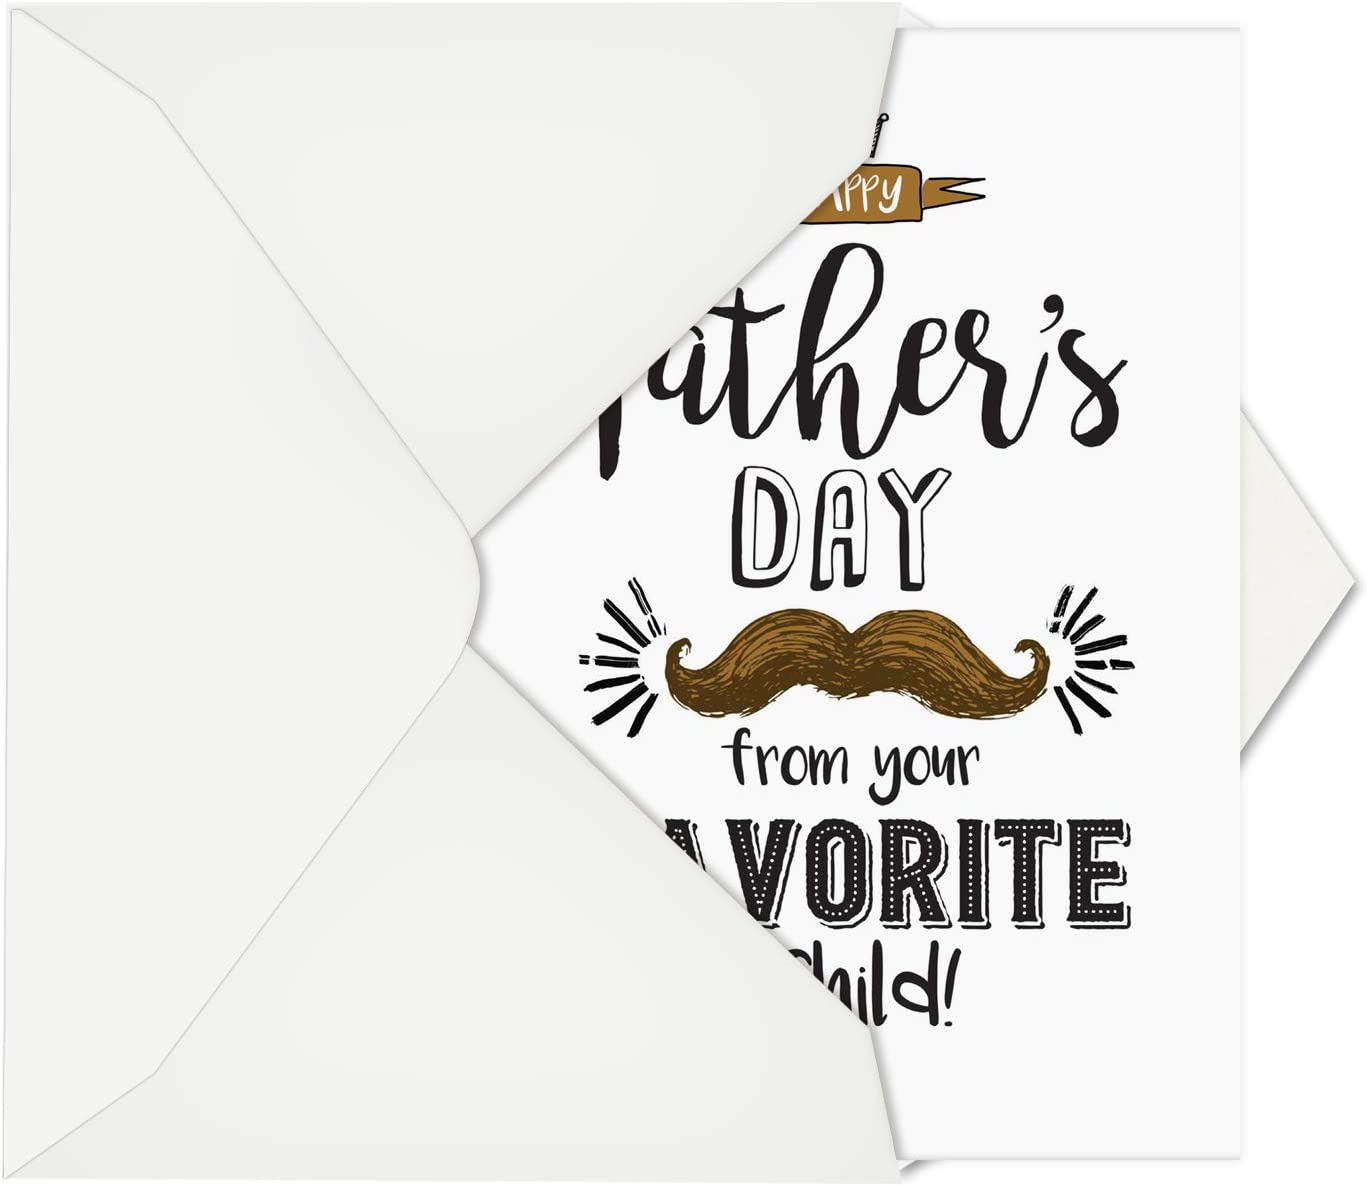 Amazon Com Nobleworks Funny Father S Day Card With Envelope Humor Greeting Card For Dads Stepdad Grandpa From Dad S Favorite Child C6765fdg Office Products